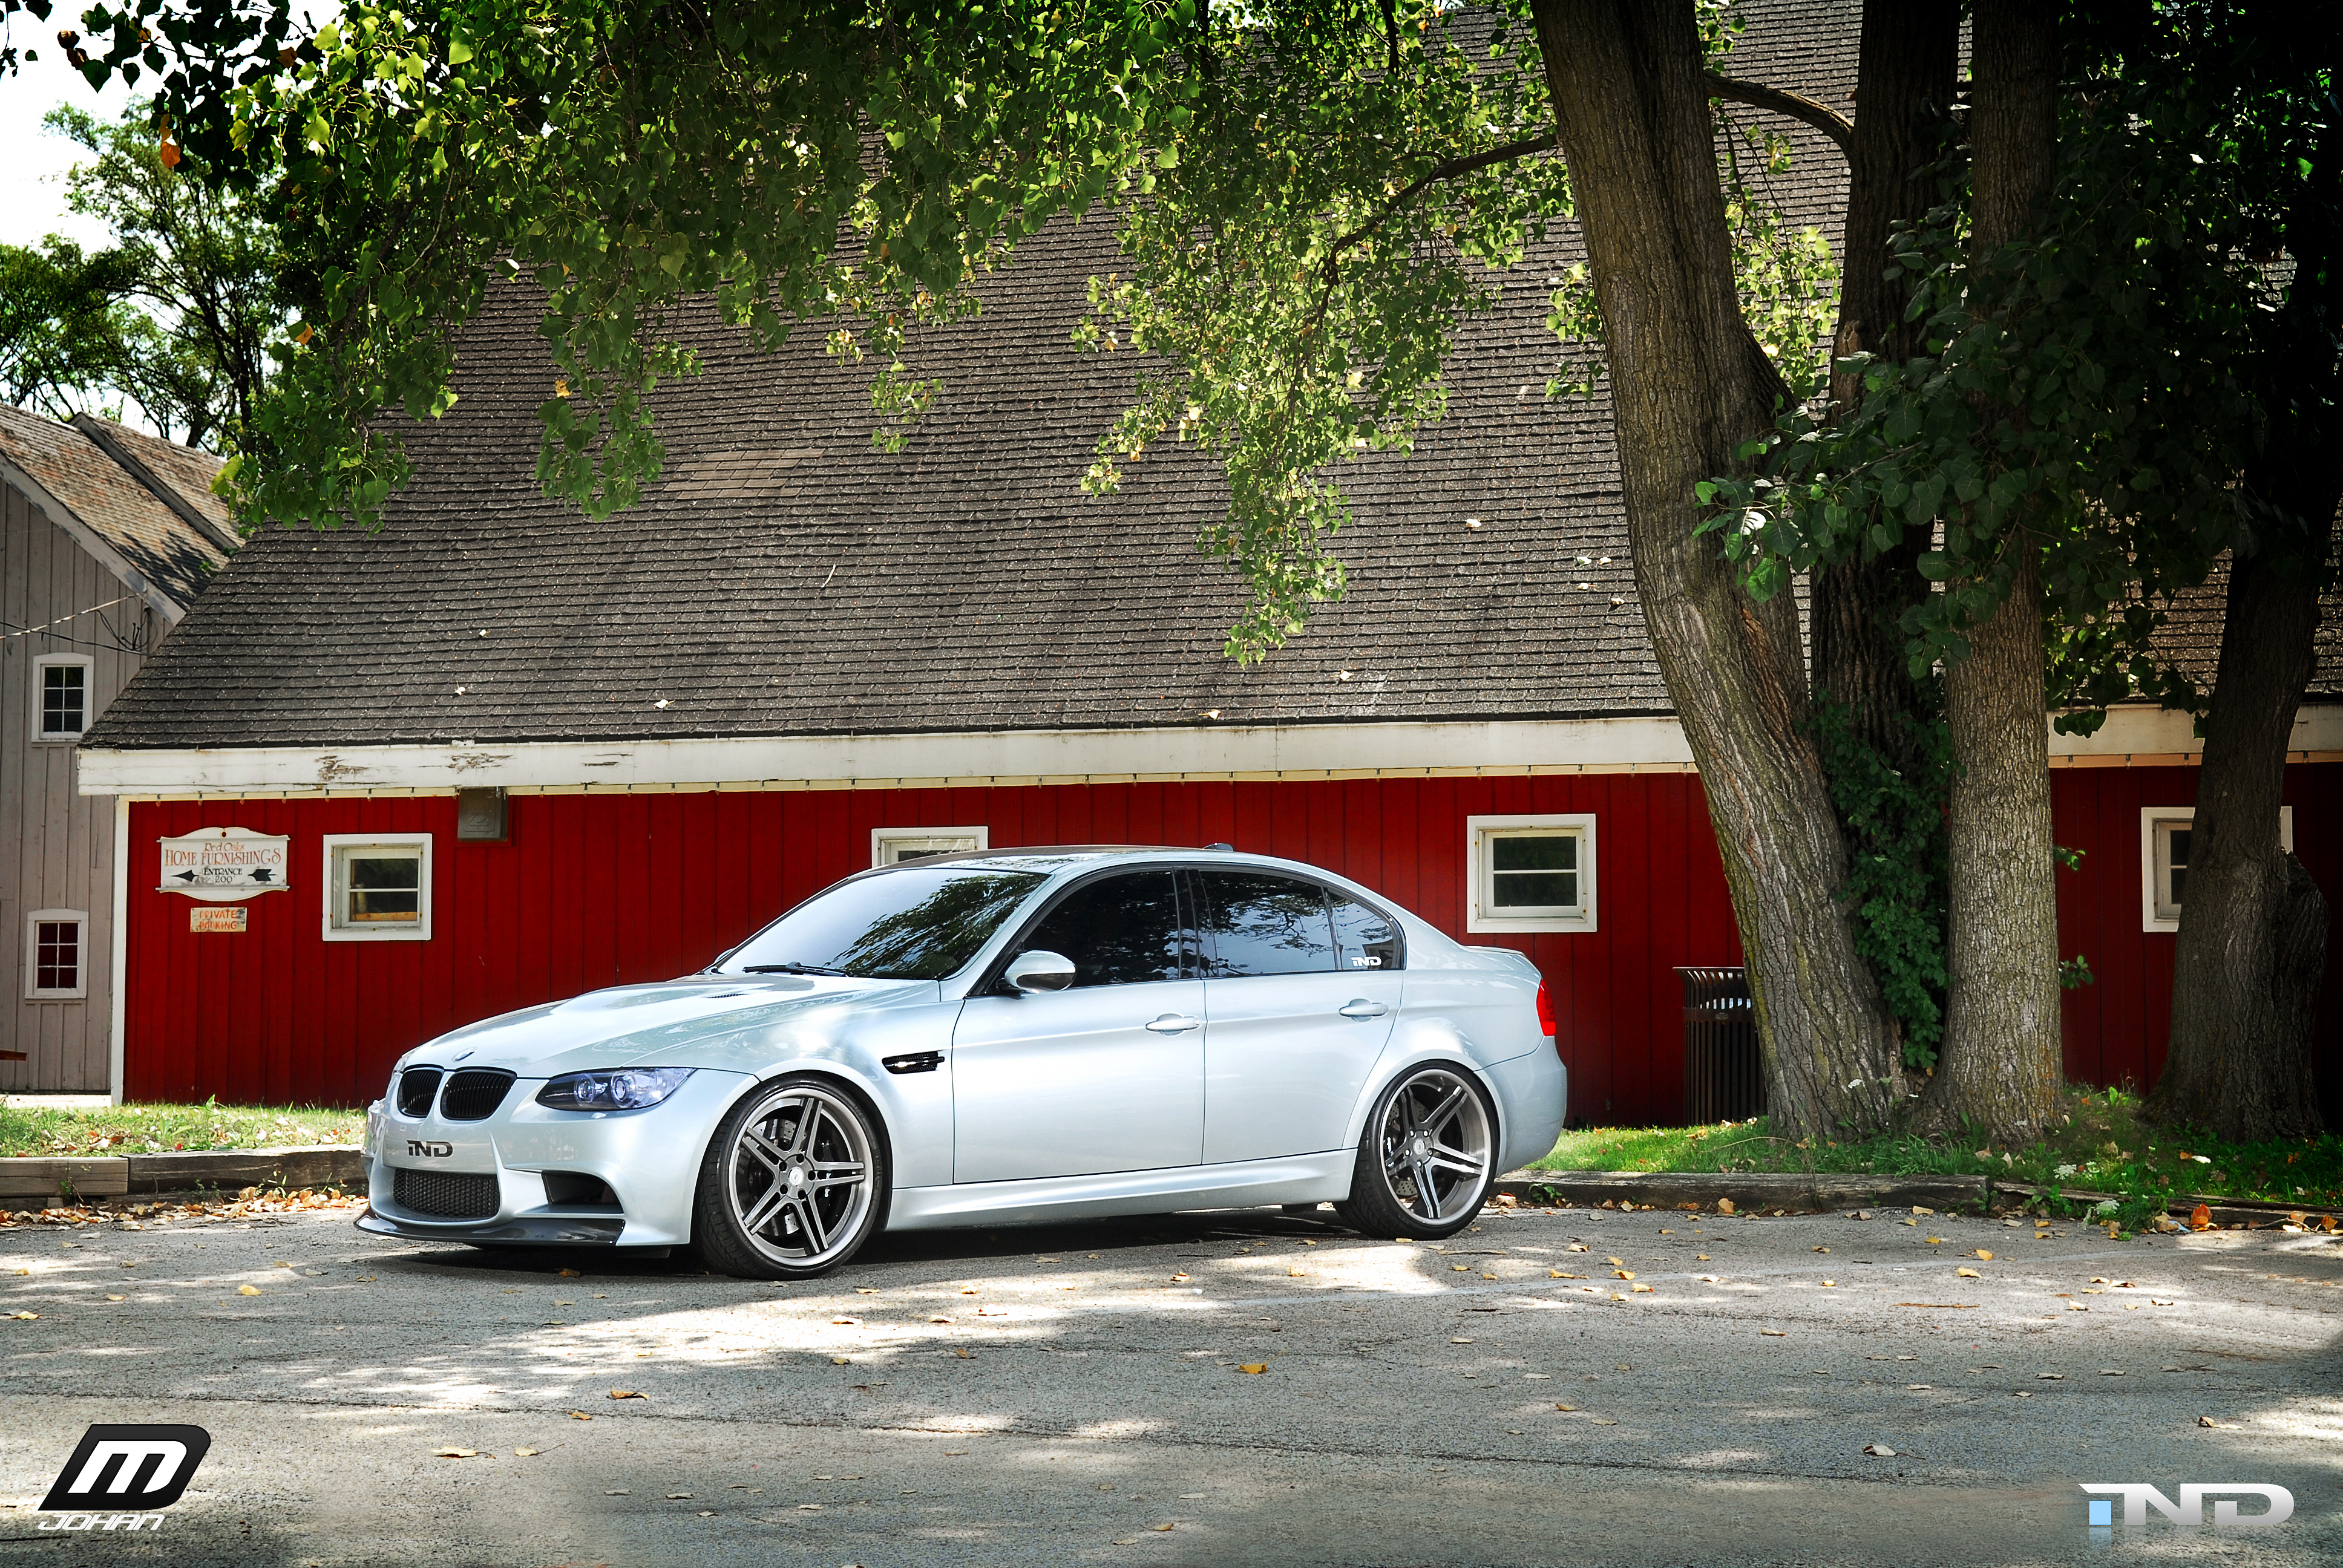 online bmw forum toon onderwerp bmw e90 e91 e92 e93 styling hoe moet. Black Bedroom Furniture Sets. Home Design Ideas